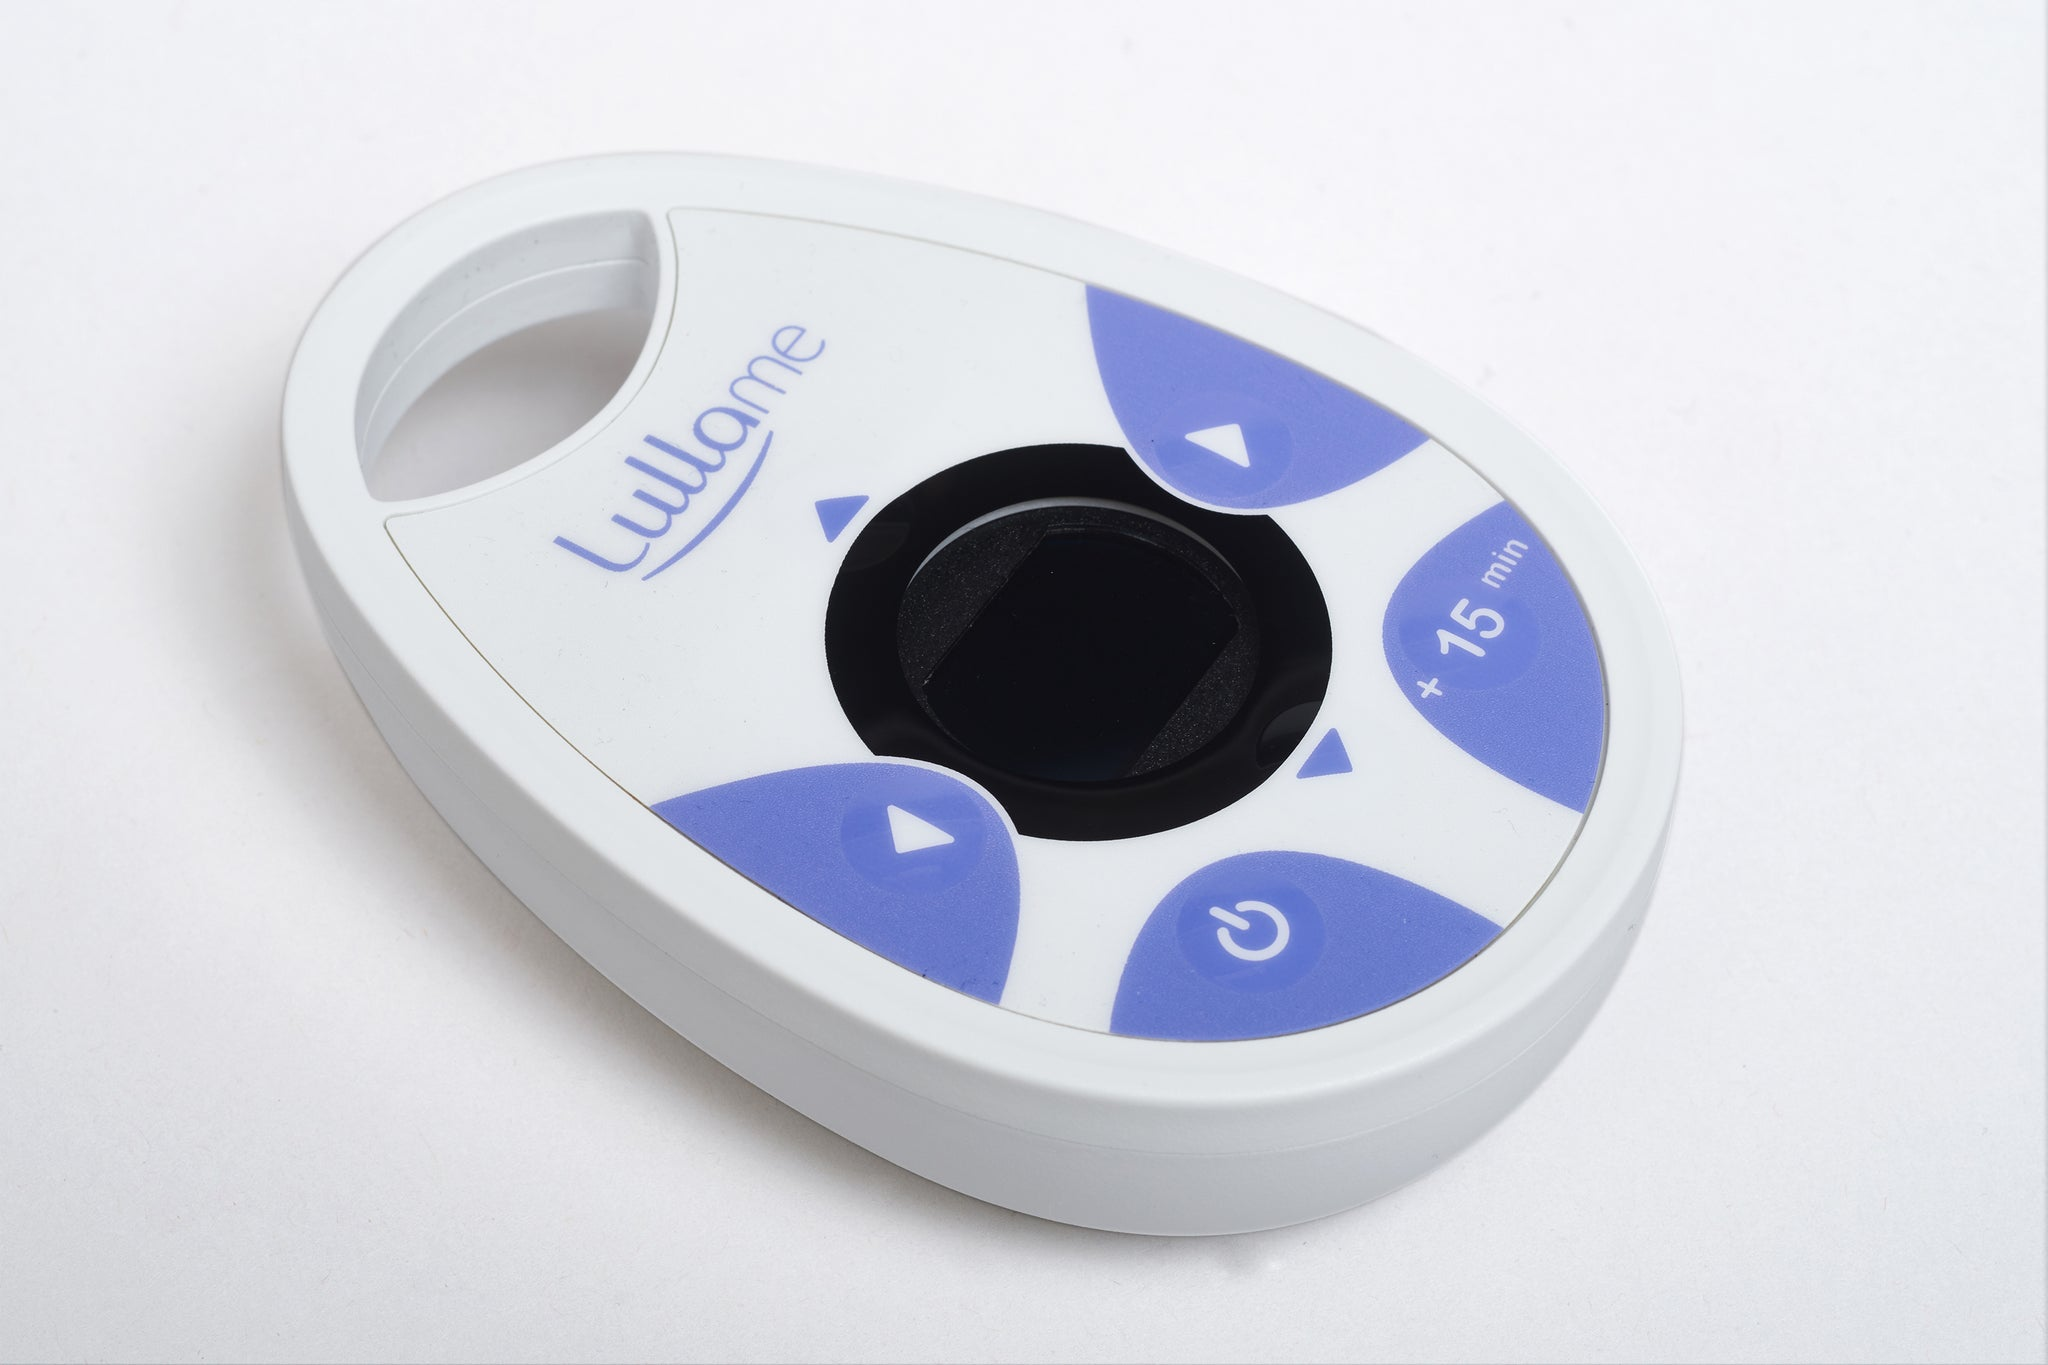 LullaMe remote controller